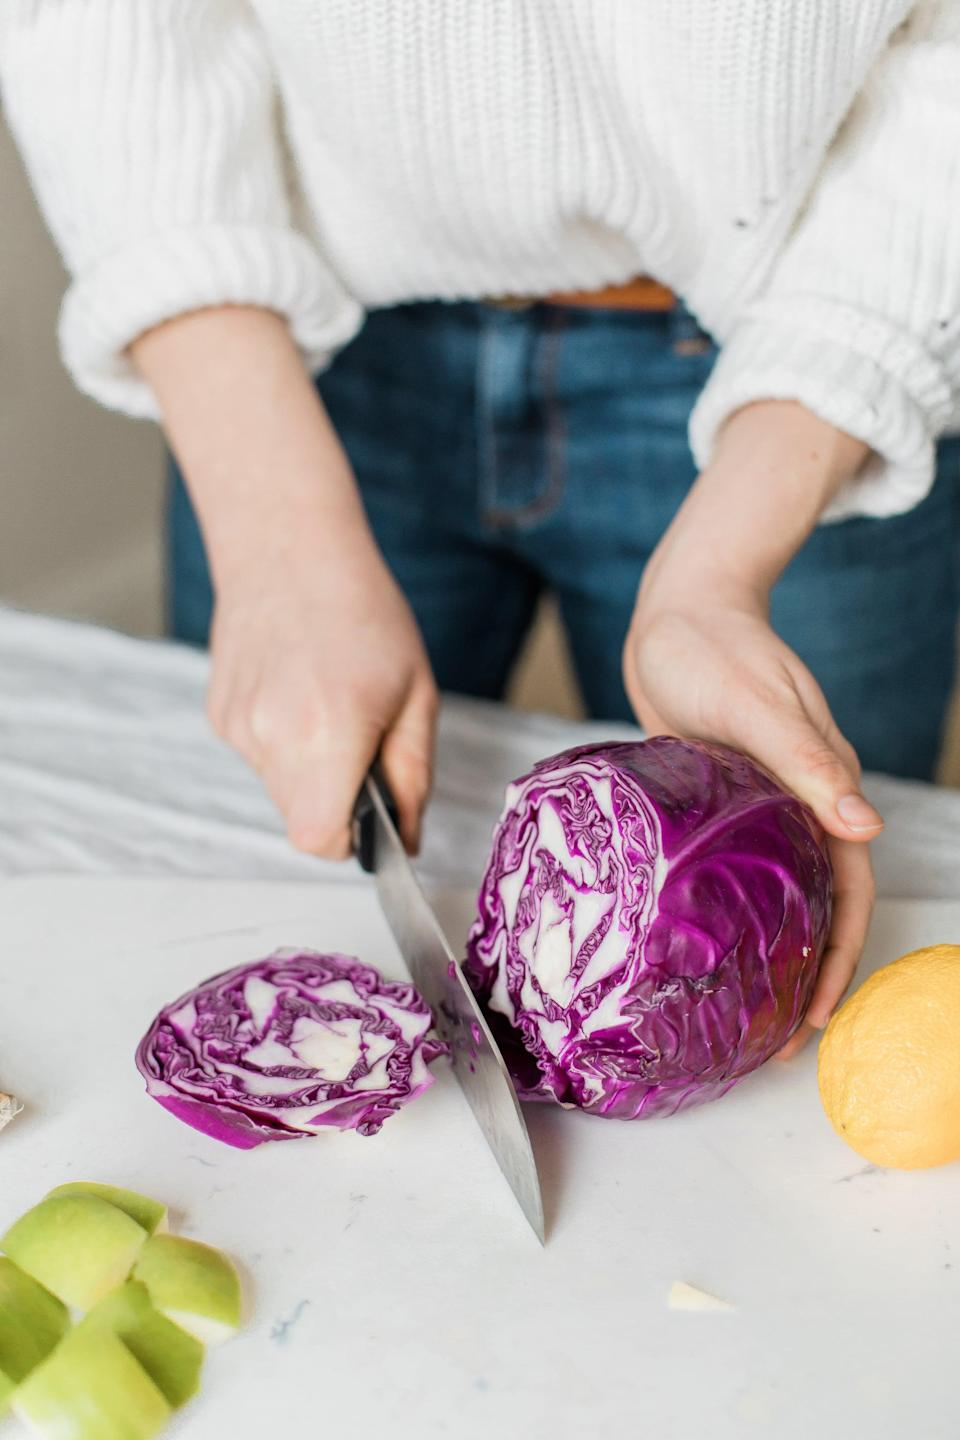 <p>Not only is this a great way to know exactly what you're putting in your body, but cooking for yourself can also be a huge stress reliever - and save you money.</p>